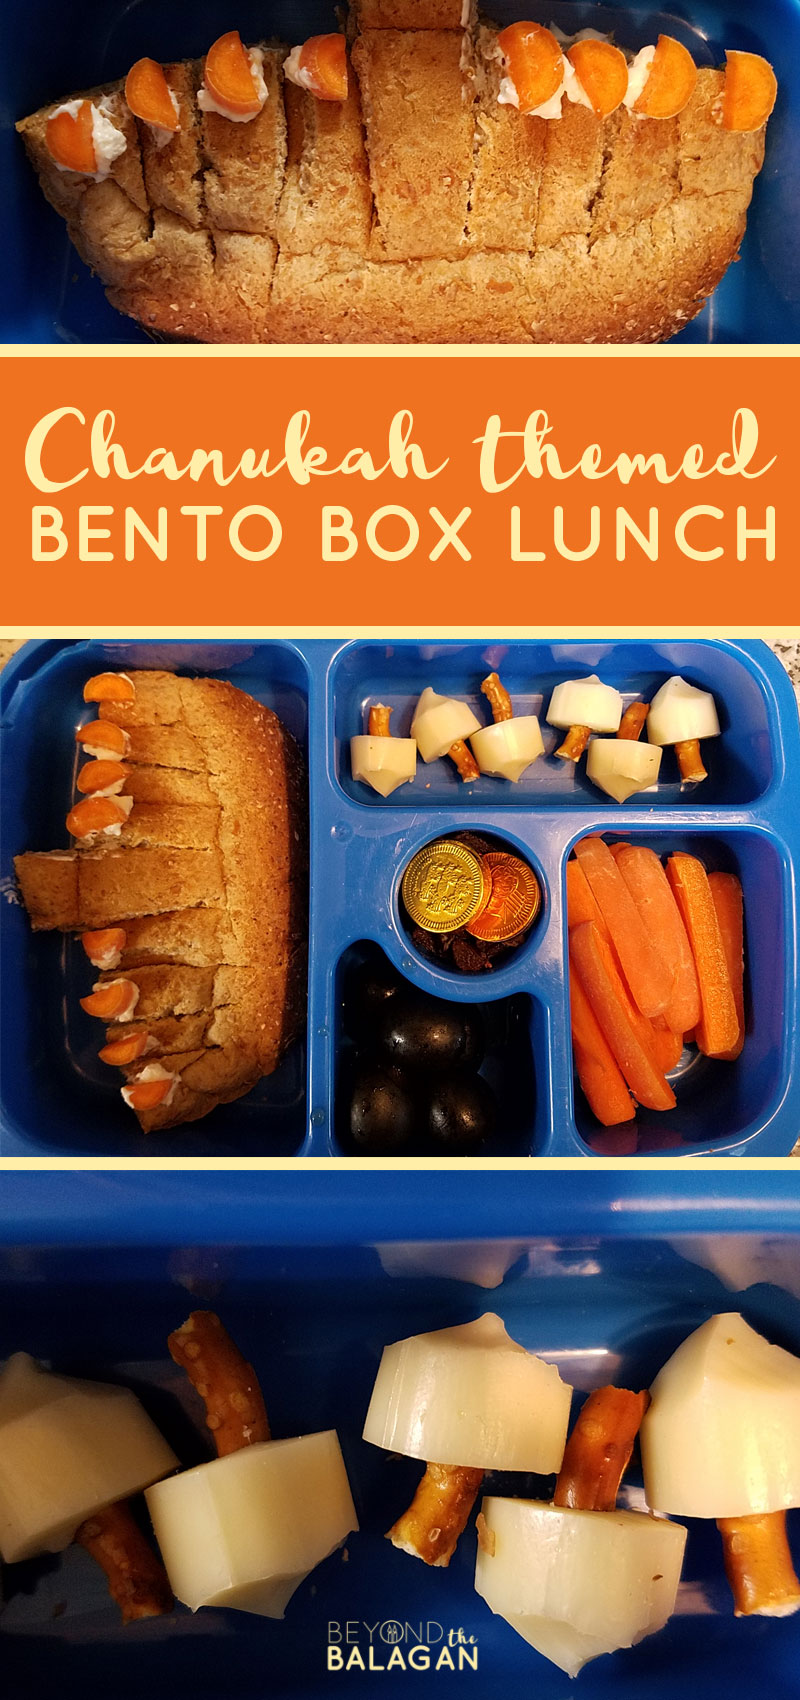 Click for this Chanukah lunch bento box idea - a fun Hanukkah food idea for kids! #hanukkah #chanukah